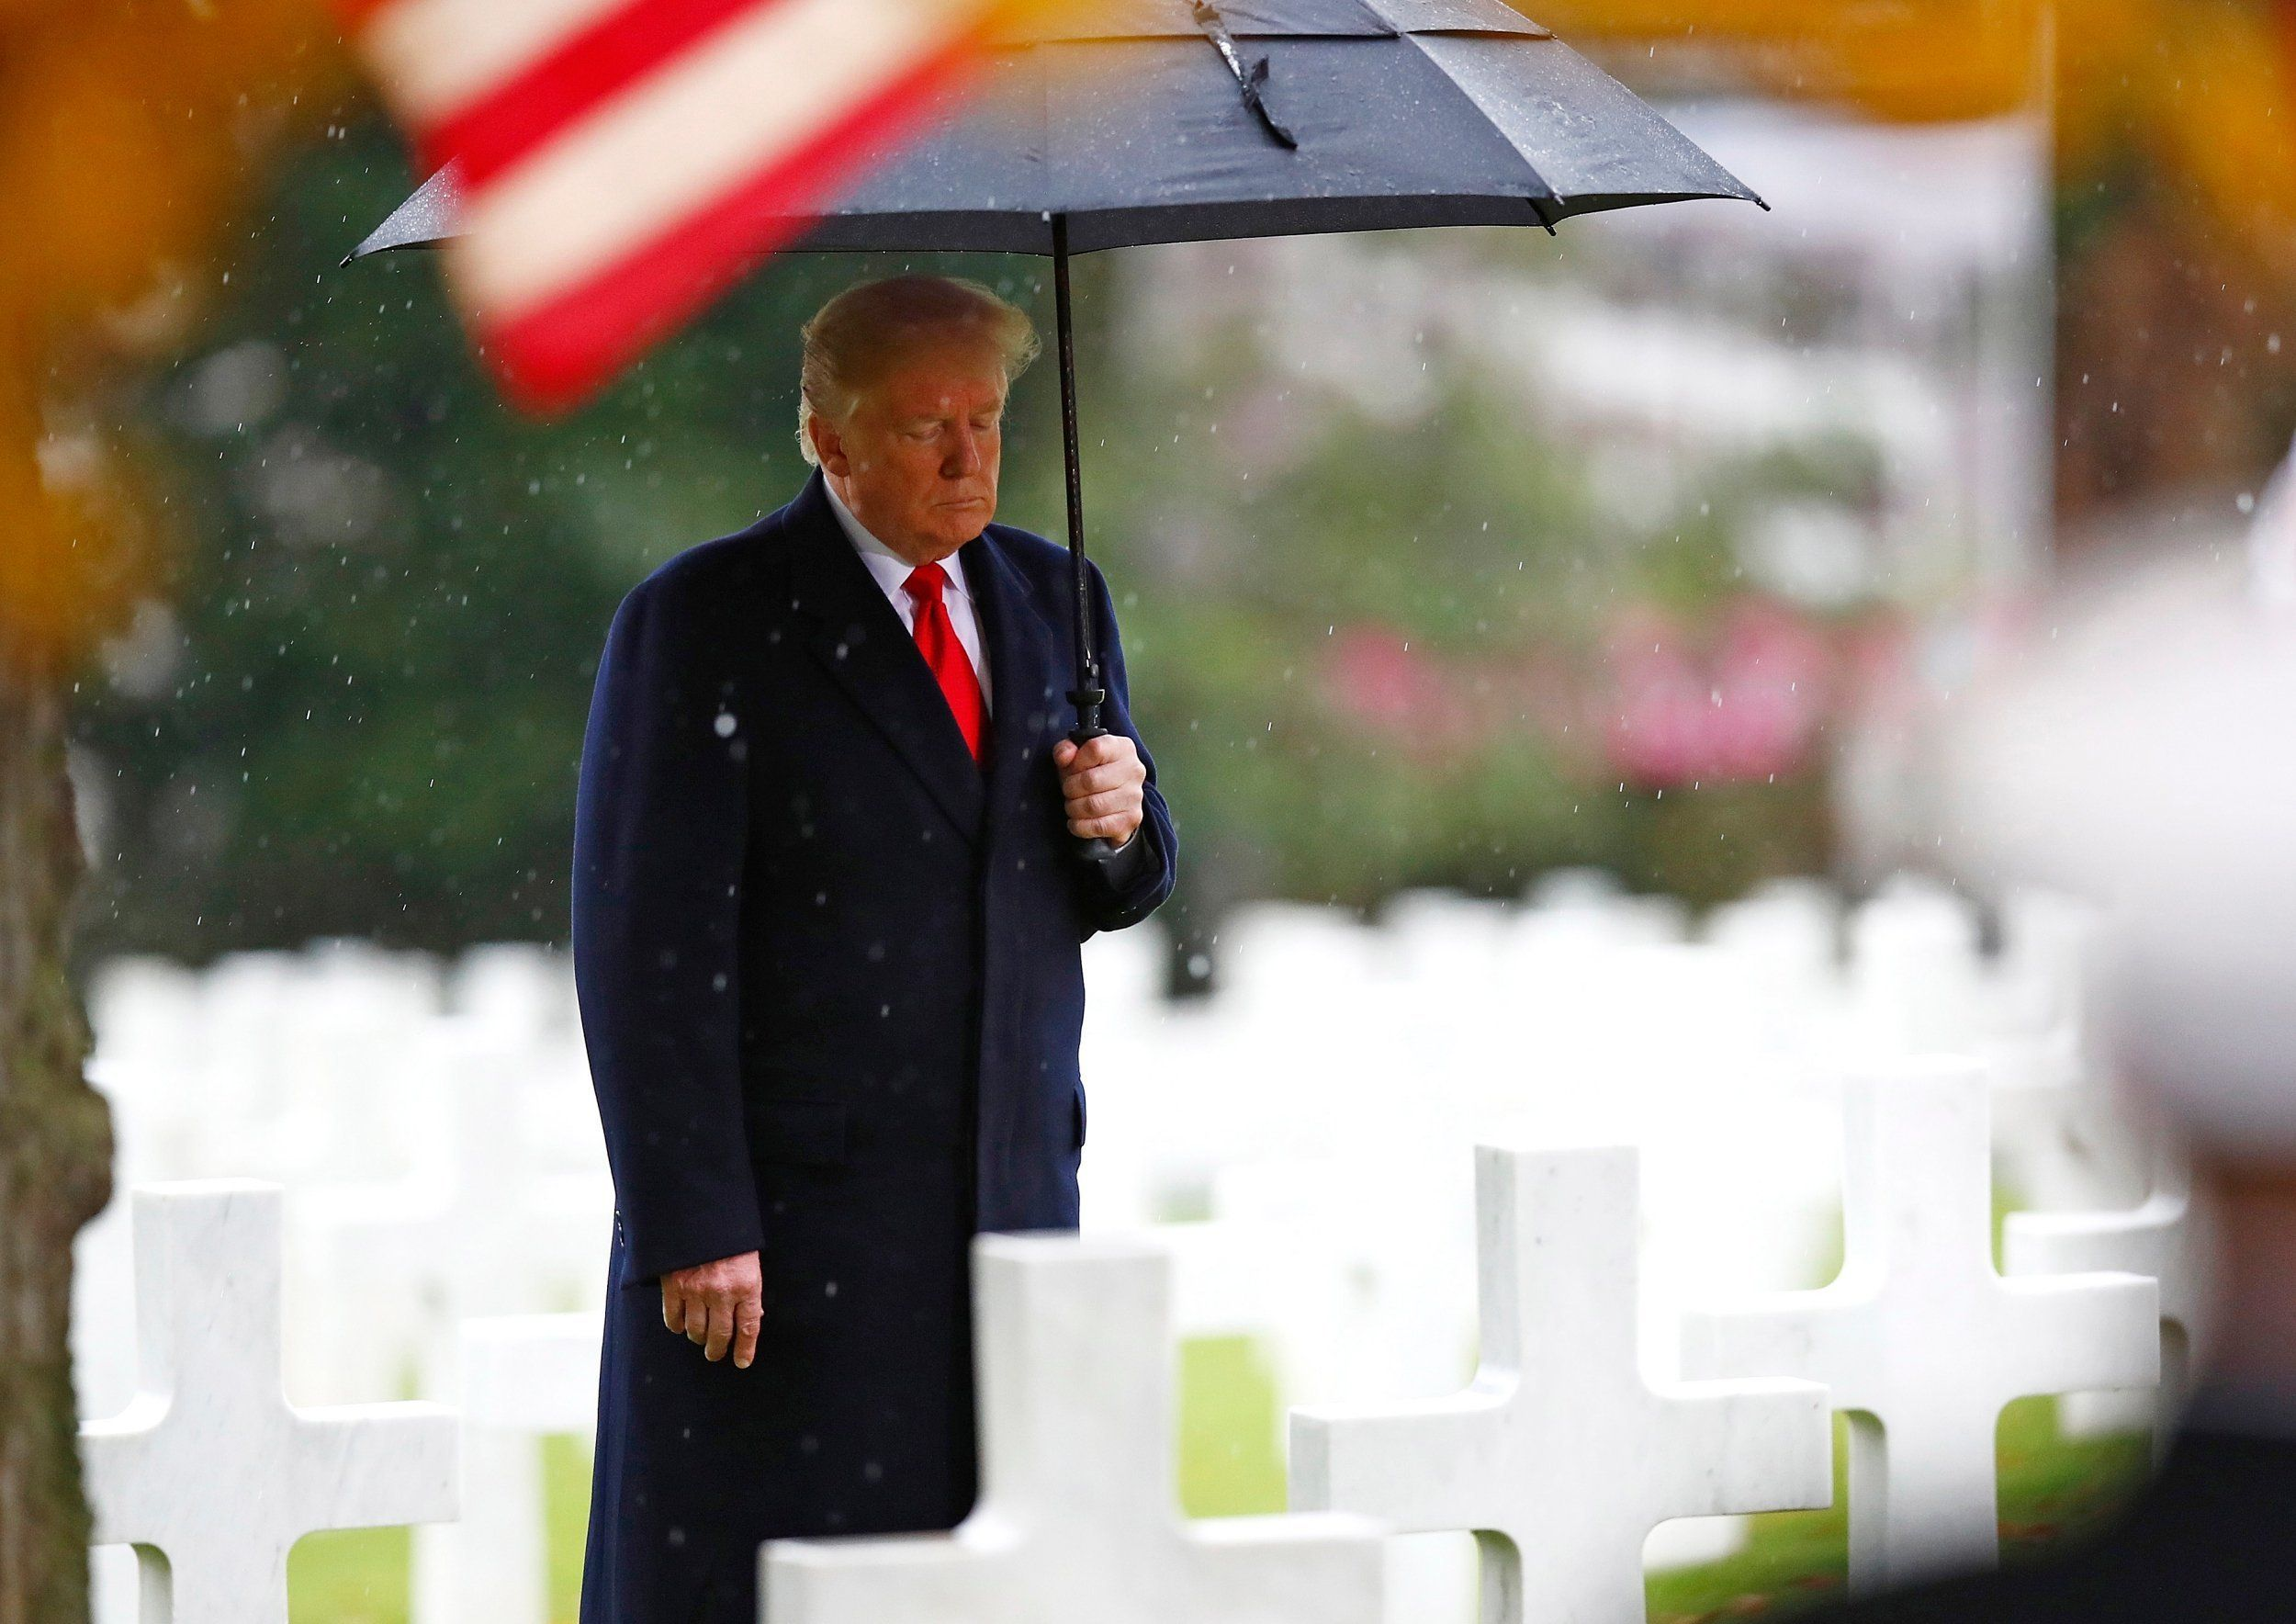 Donald Trump rain: President jokingly complains about 'getting drenched' at Armistice ceremony a day after cancelling cemetery trip due to bad weather